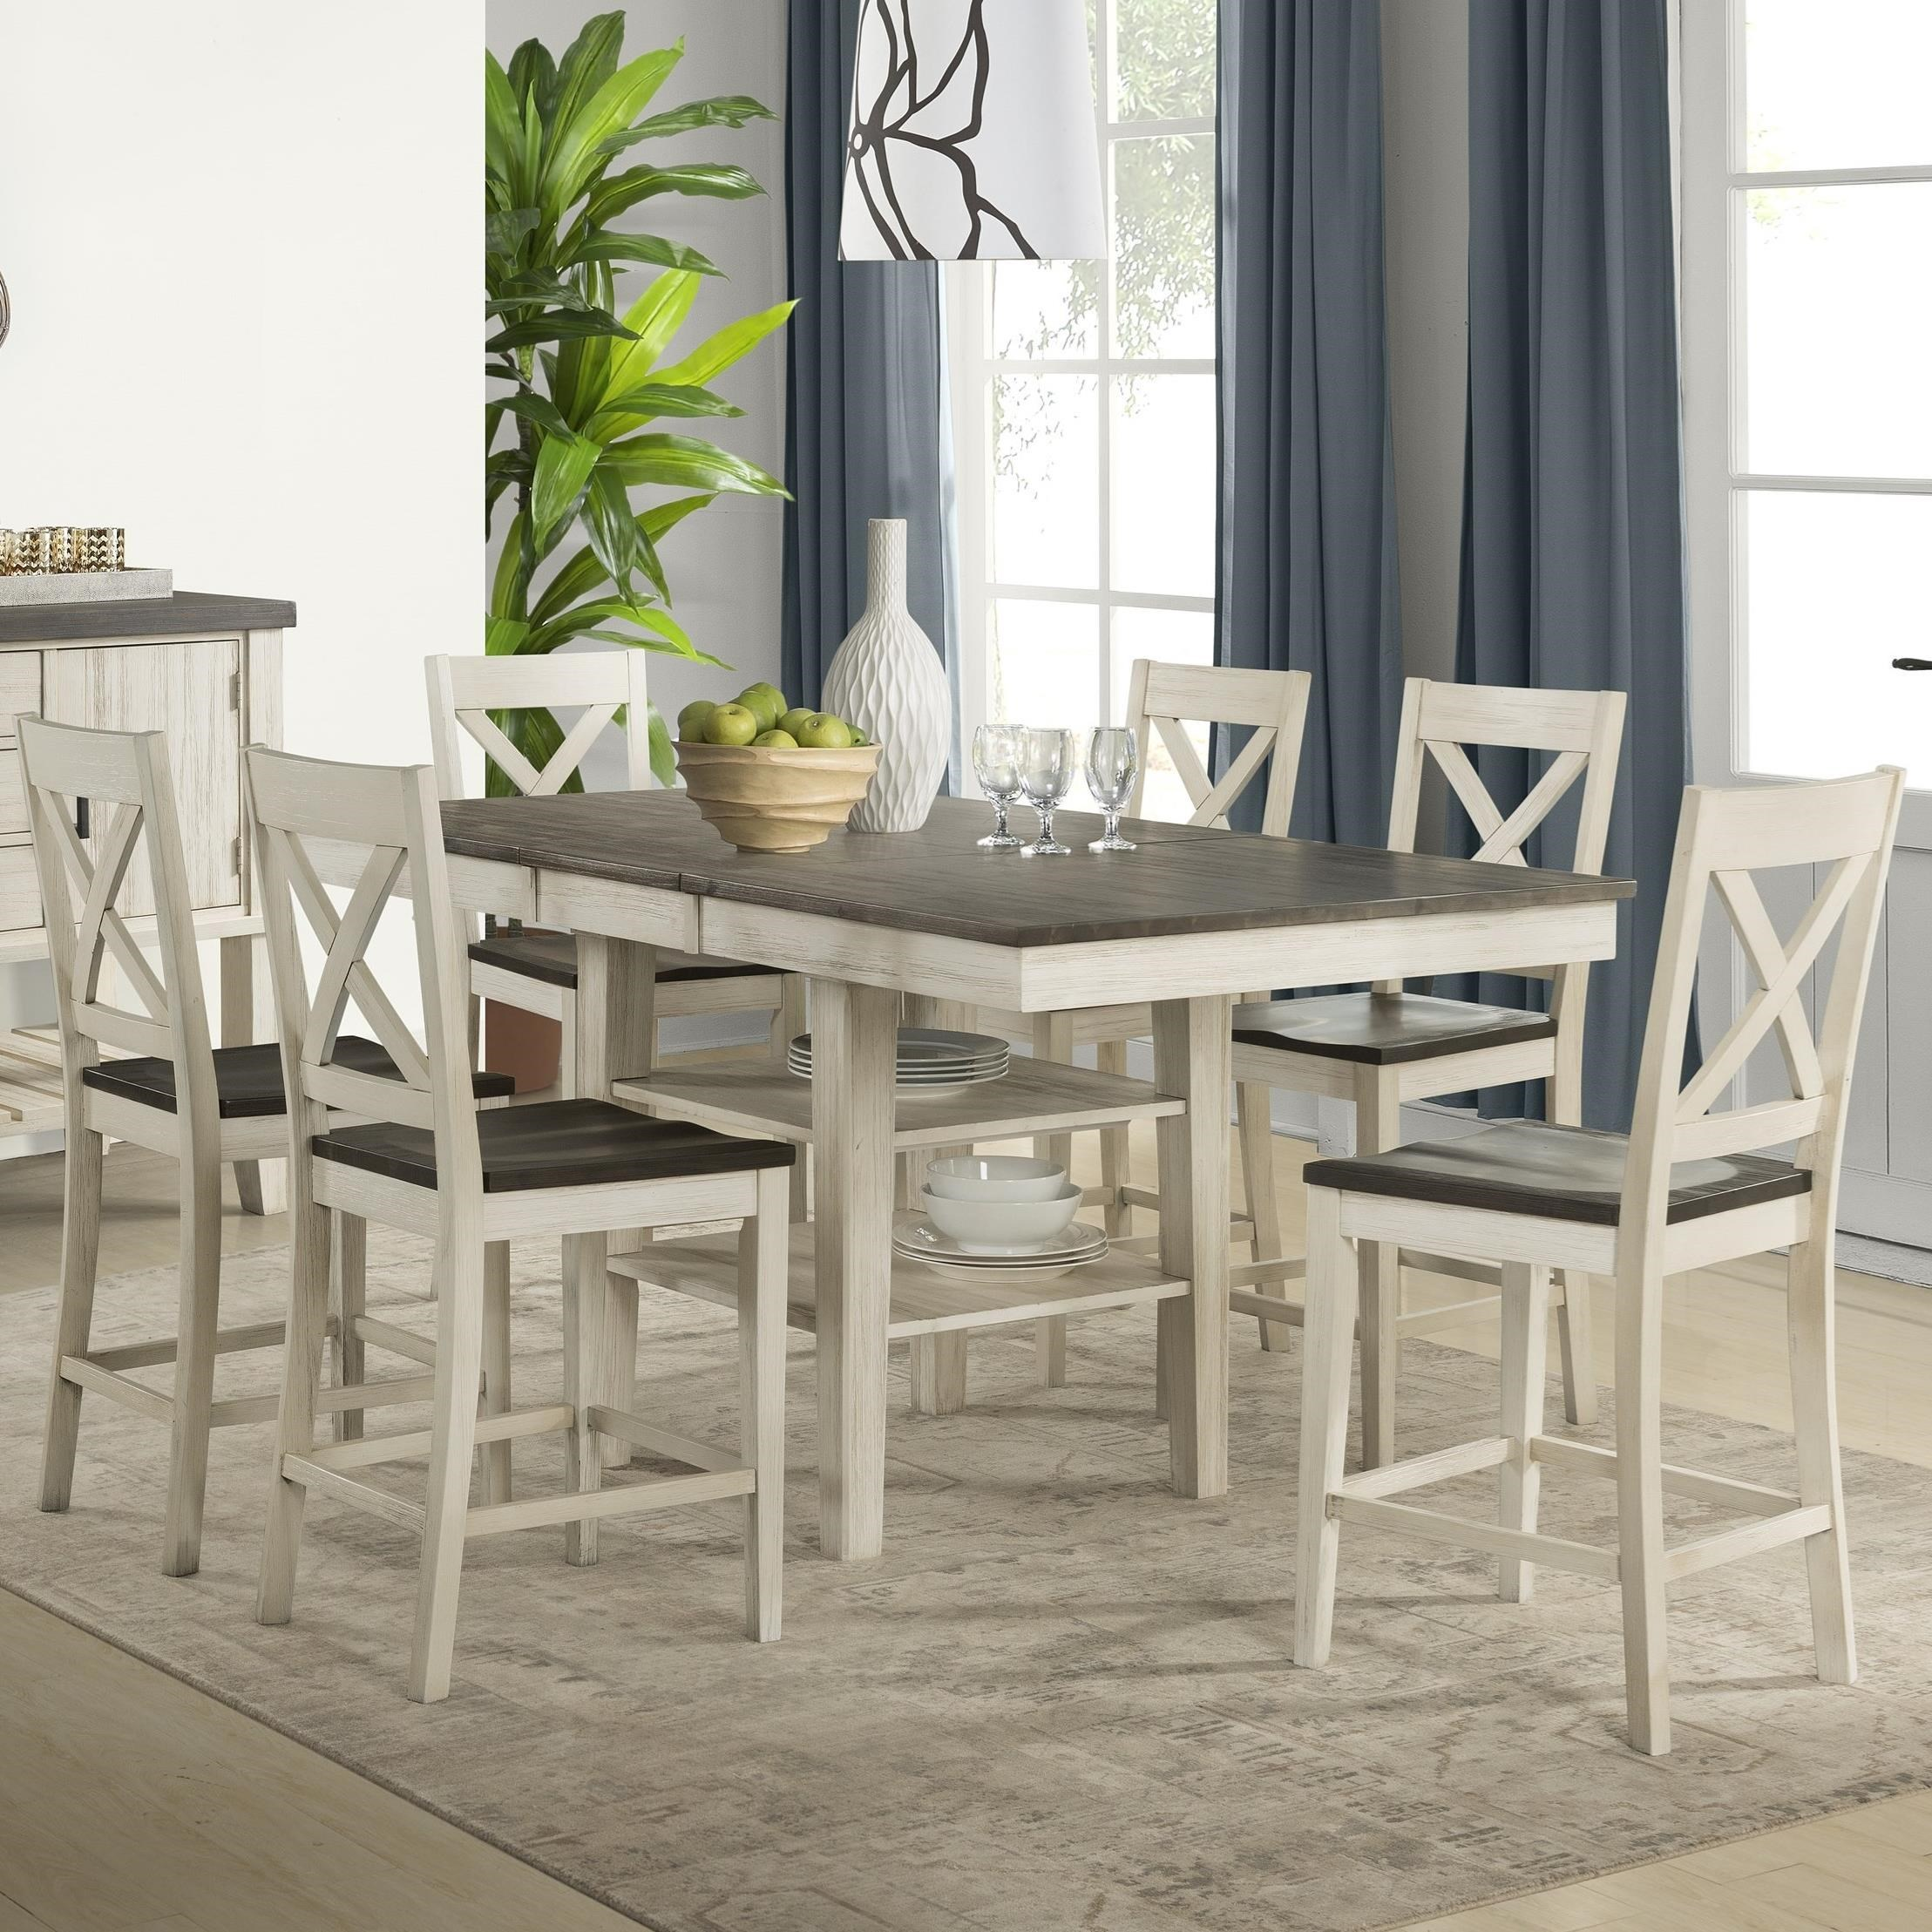 7 Piece Transitional Counter Height Table and X Back Chair Set